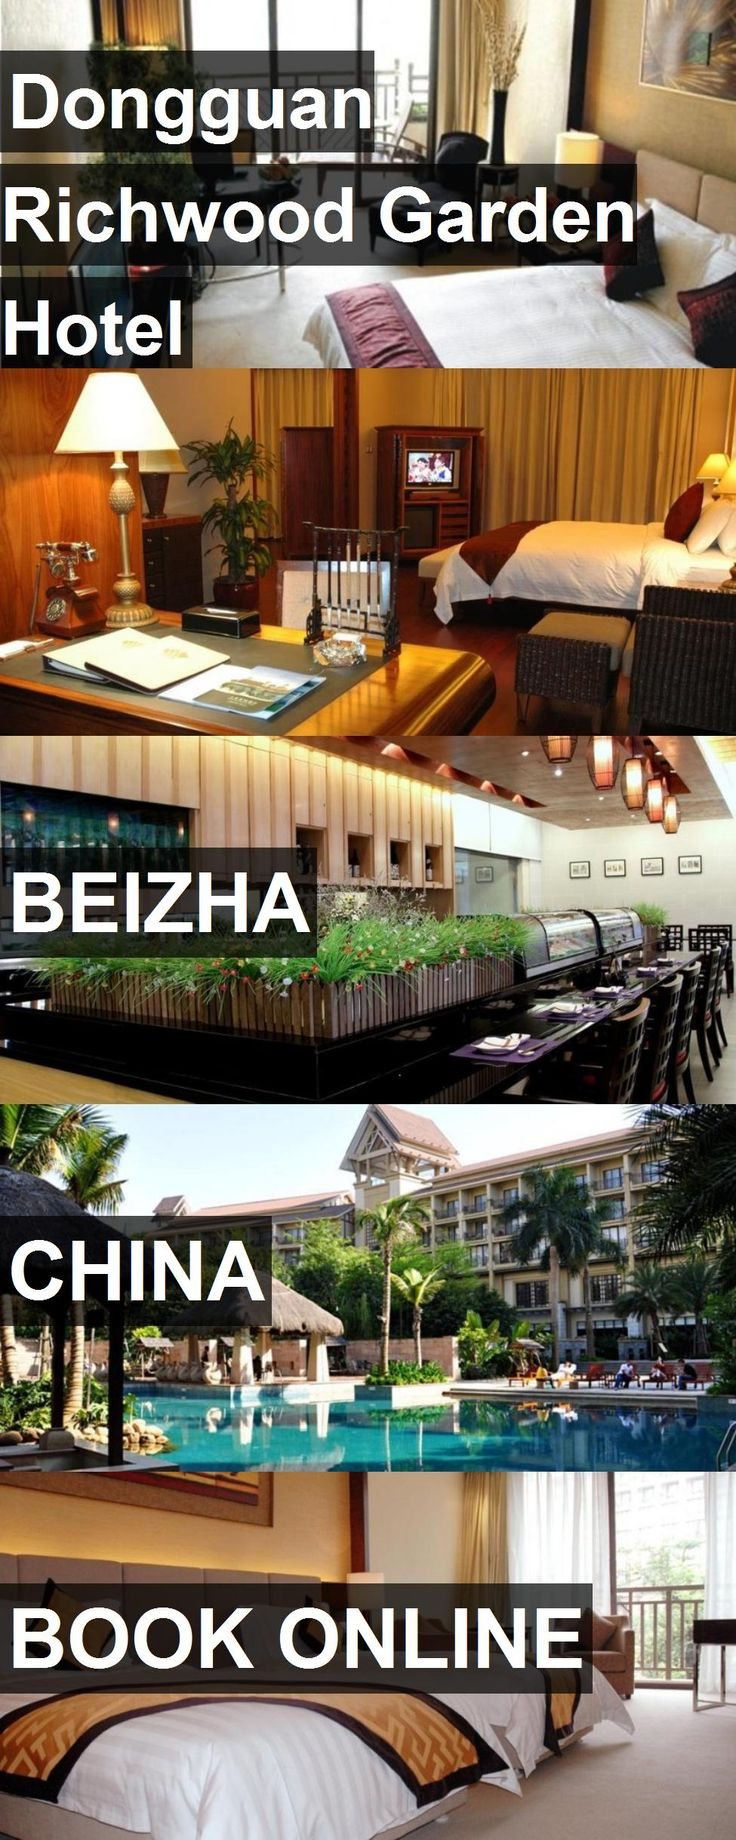 Hotel Dongguan Richwood Garden Hotel in Beizha, China. For more information, photos, reviews and best prices please follow the link. #China #Beizha #hotel #travel #vacation